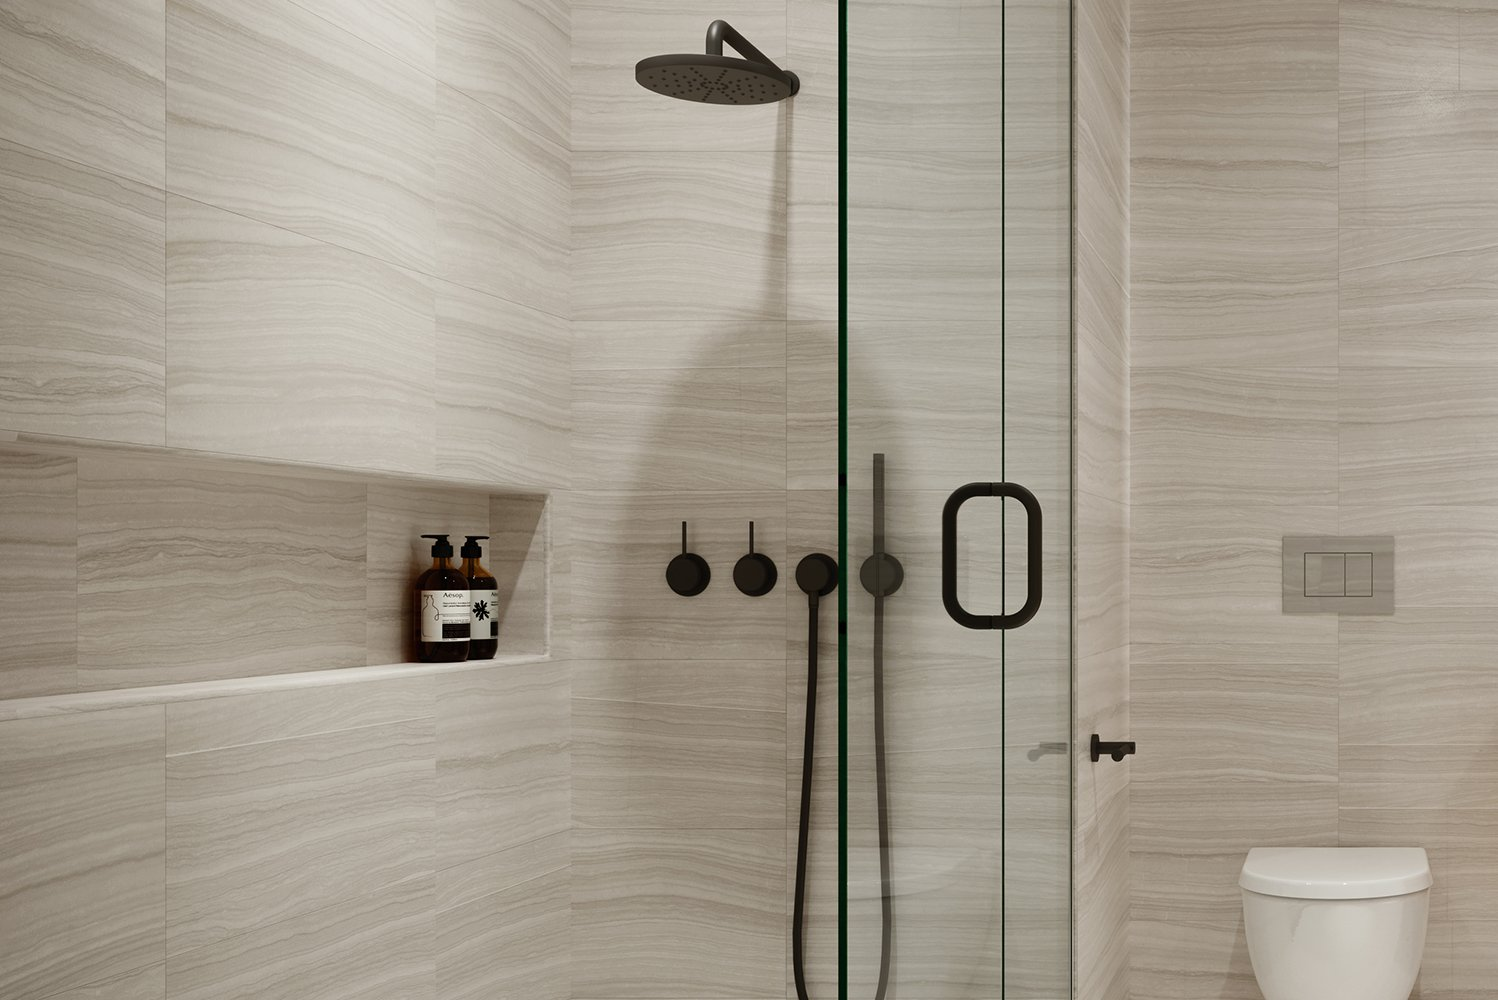 All components meet environmental standards for reducing indoor water usage, such as CalGreen certification across all kitchen and bath faucets and showerheads.